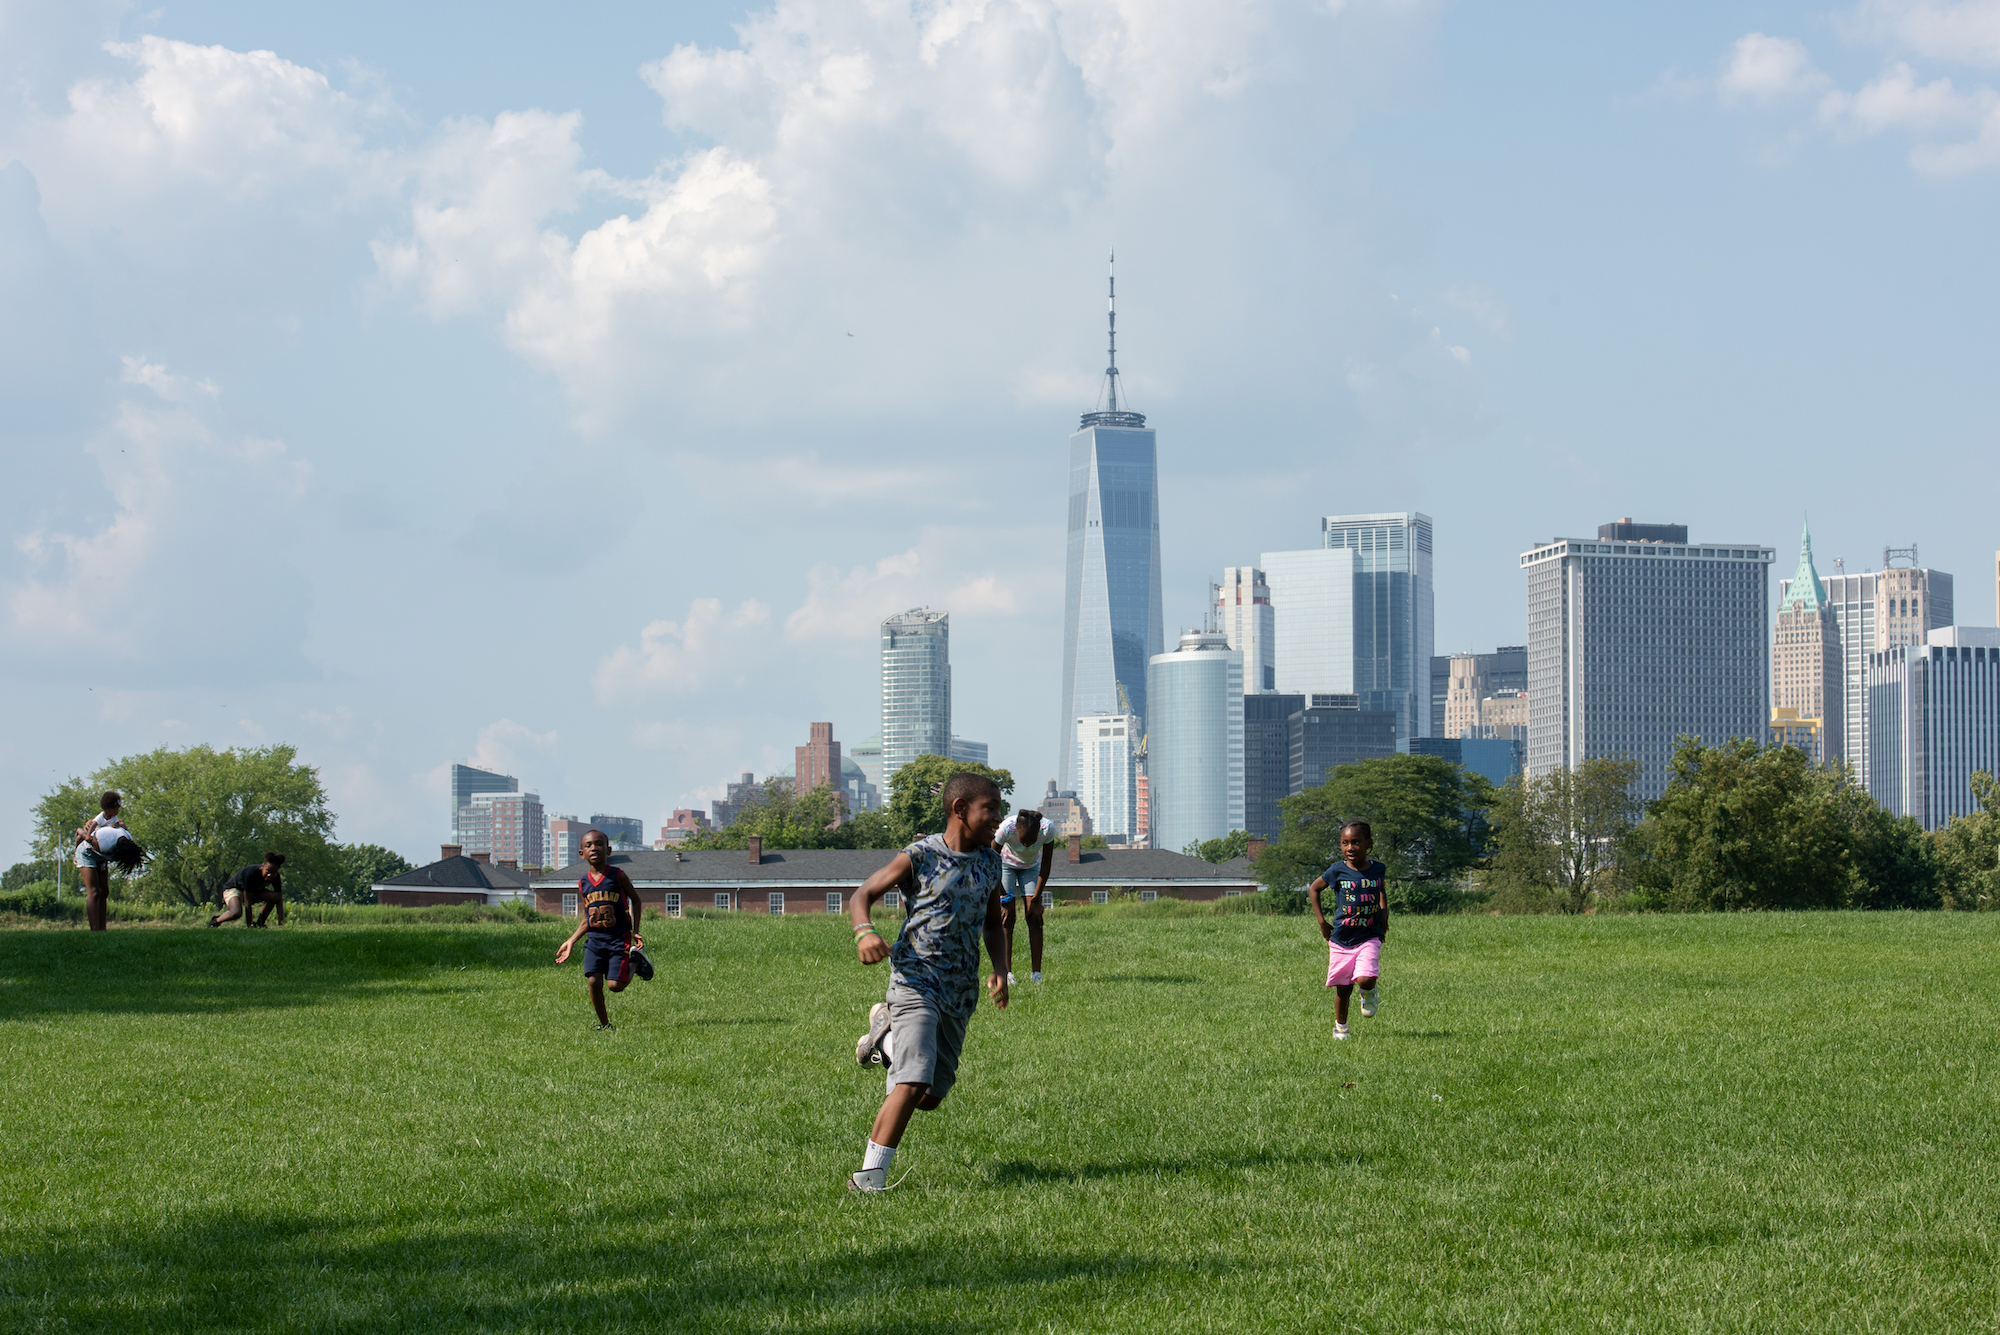 people running in park with city skyline in the background